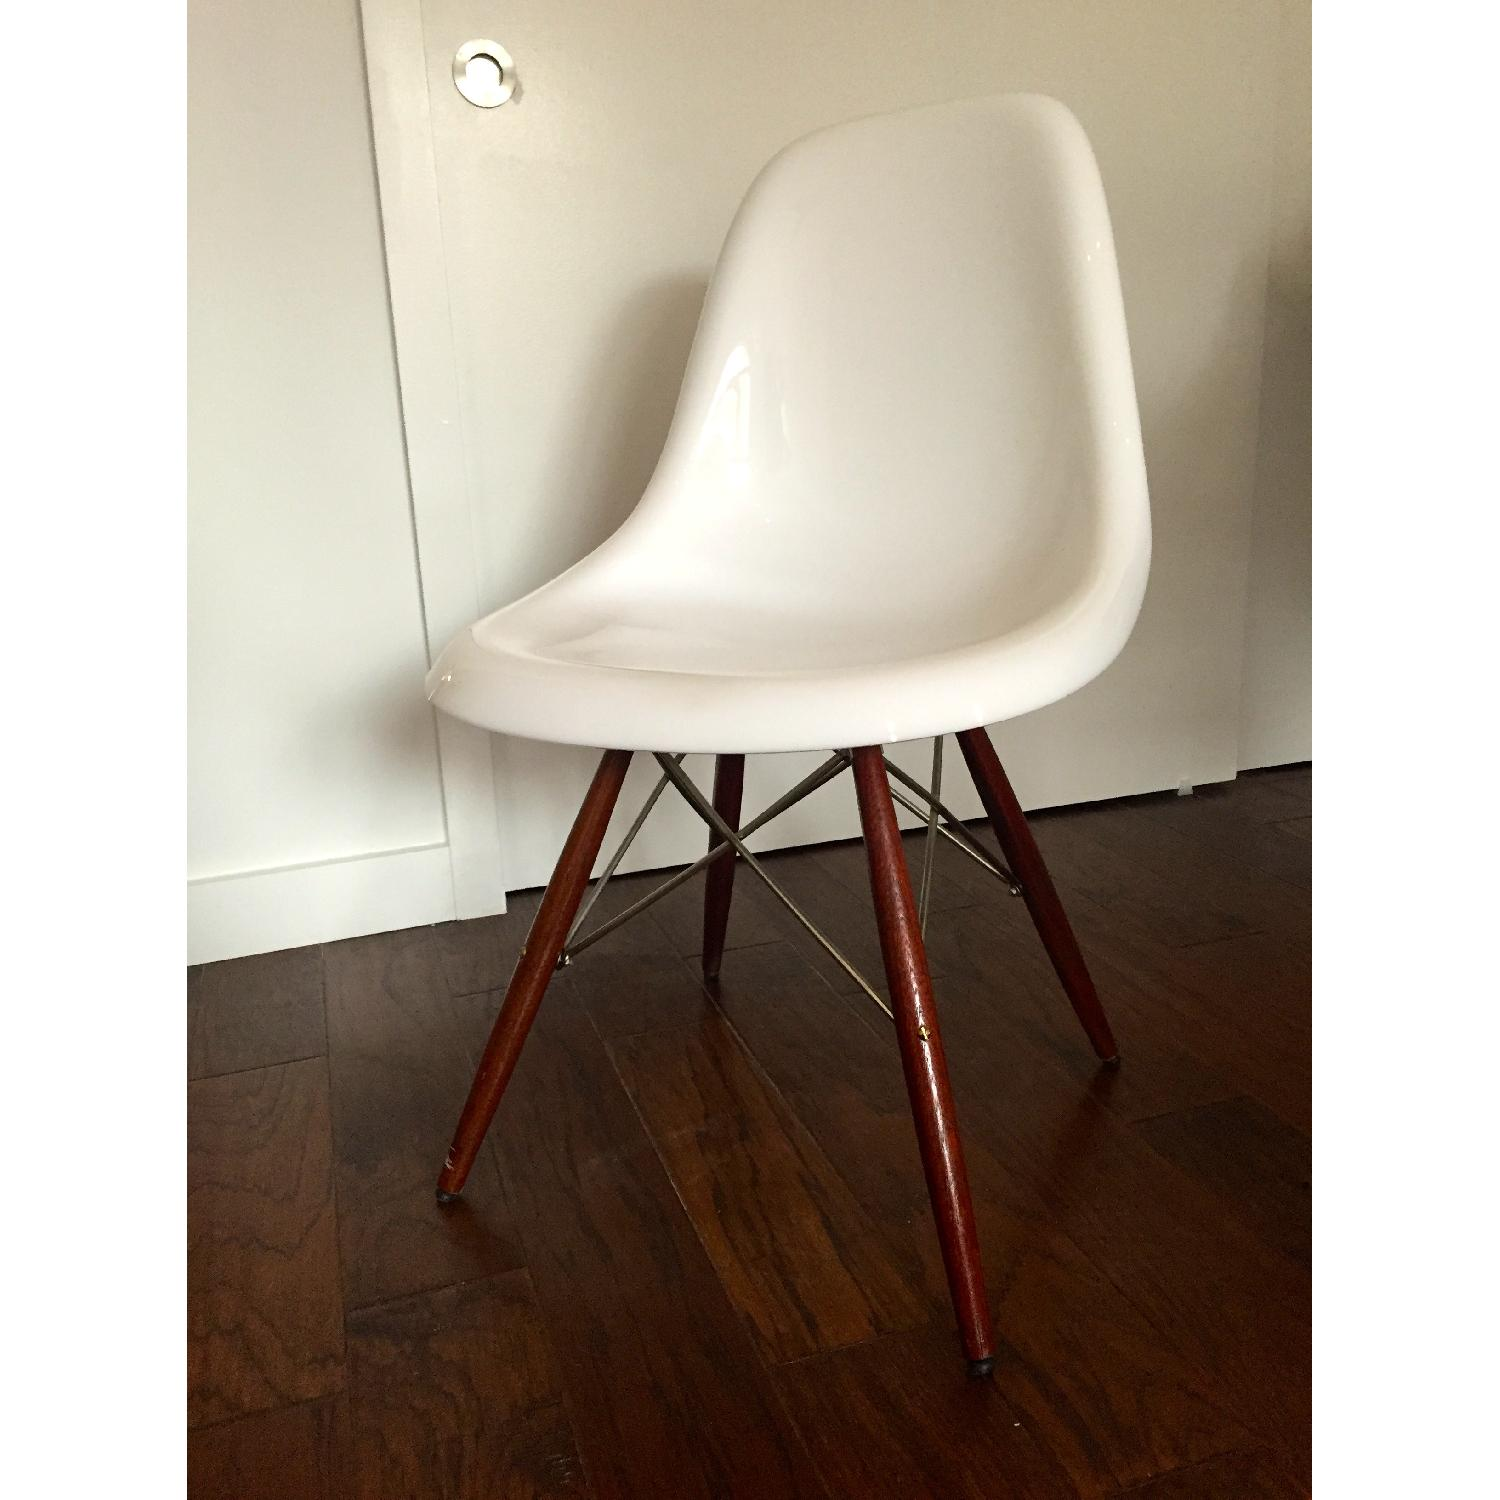 Eames Molded Plastic Chair Knockoff Used Herman Miller Eames Reproduction For Sale In Nyc